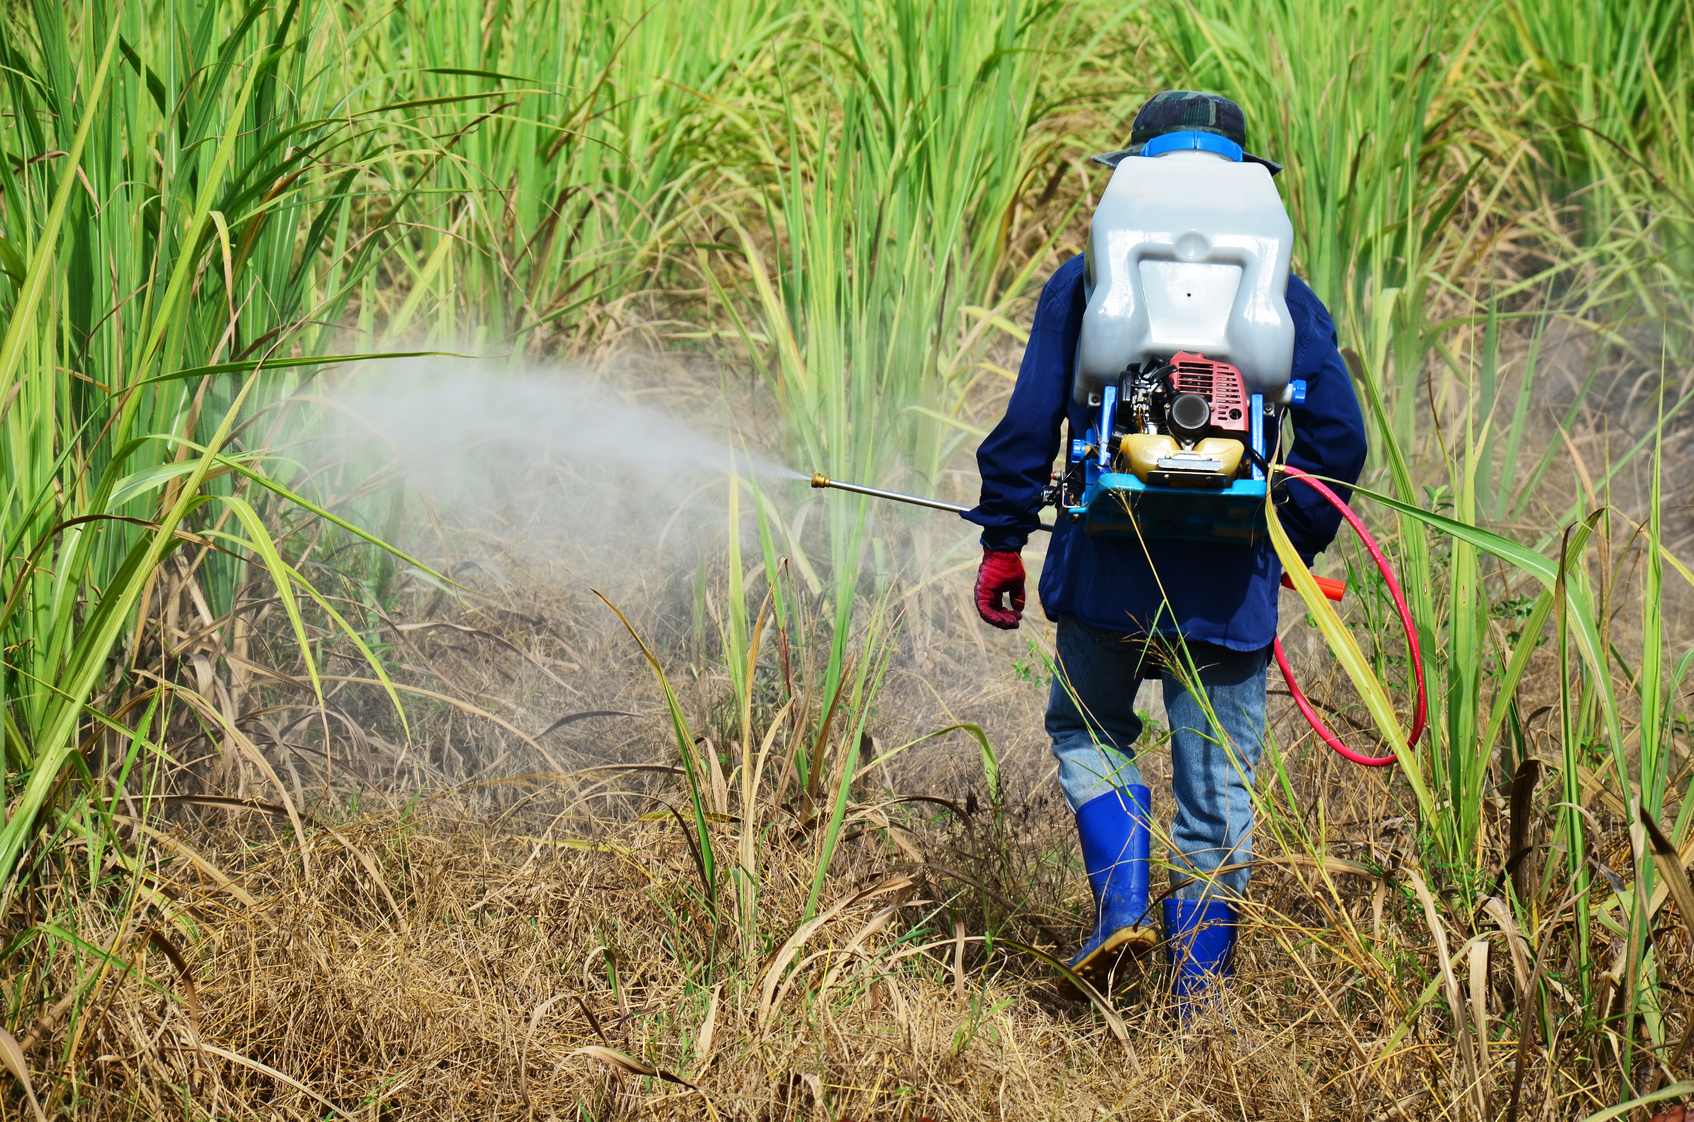 Farmer spraying herbicide on Sugarcane Field